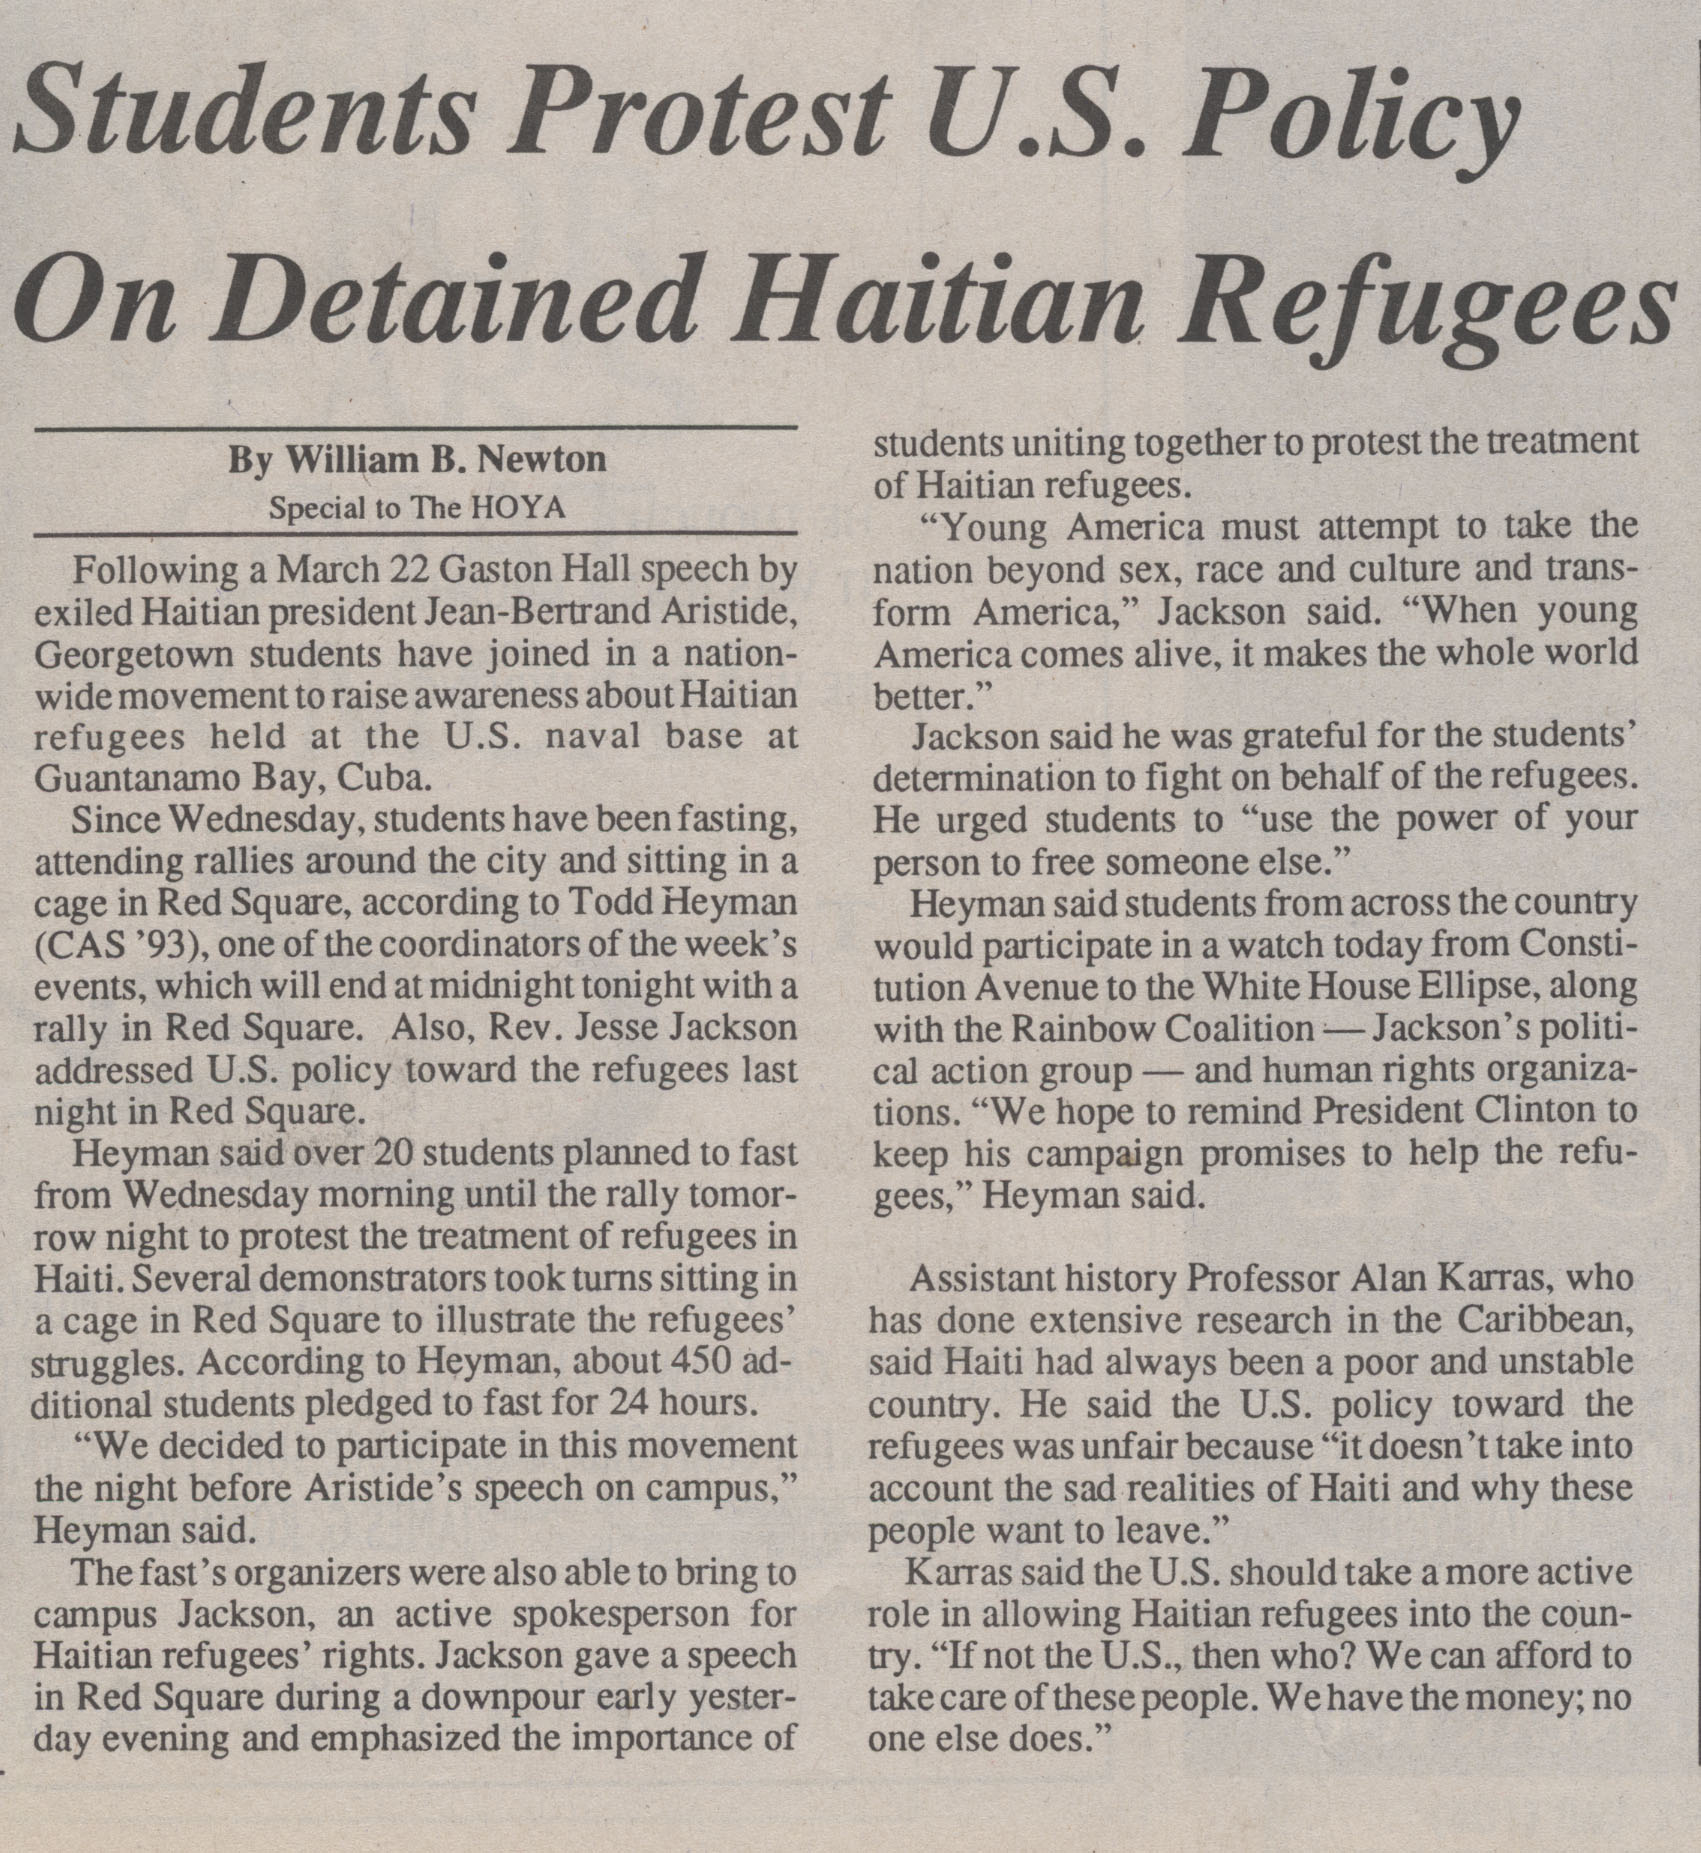 Hoya article on student protests over US policy toward Haiti